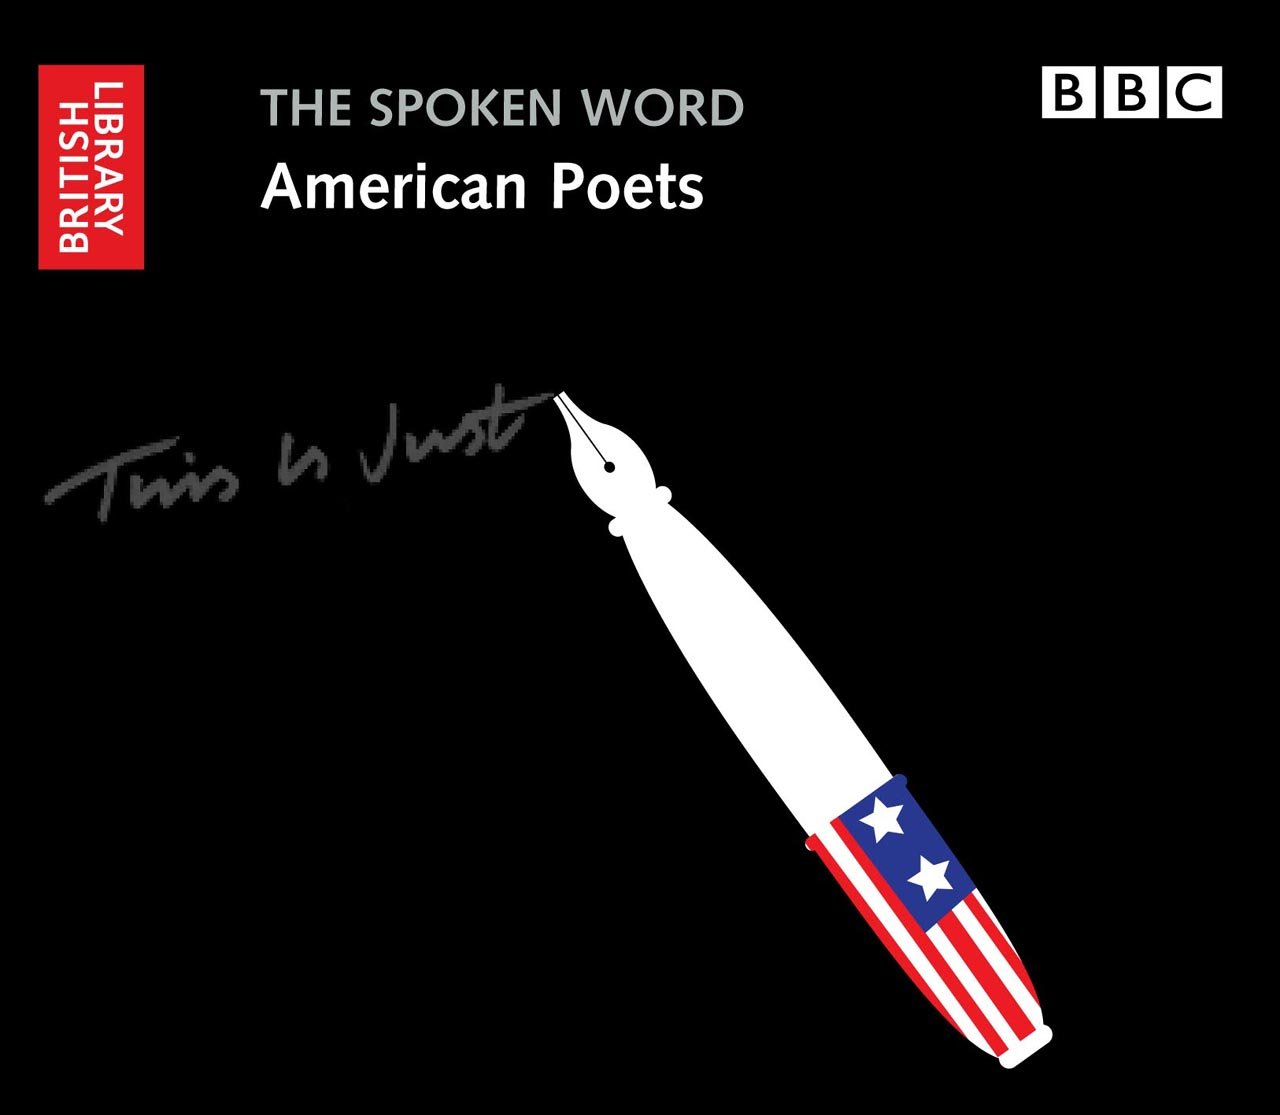 The Spoken Word - American Poets  - the British Library